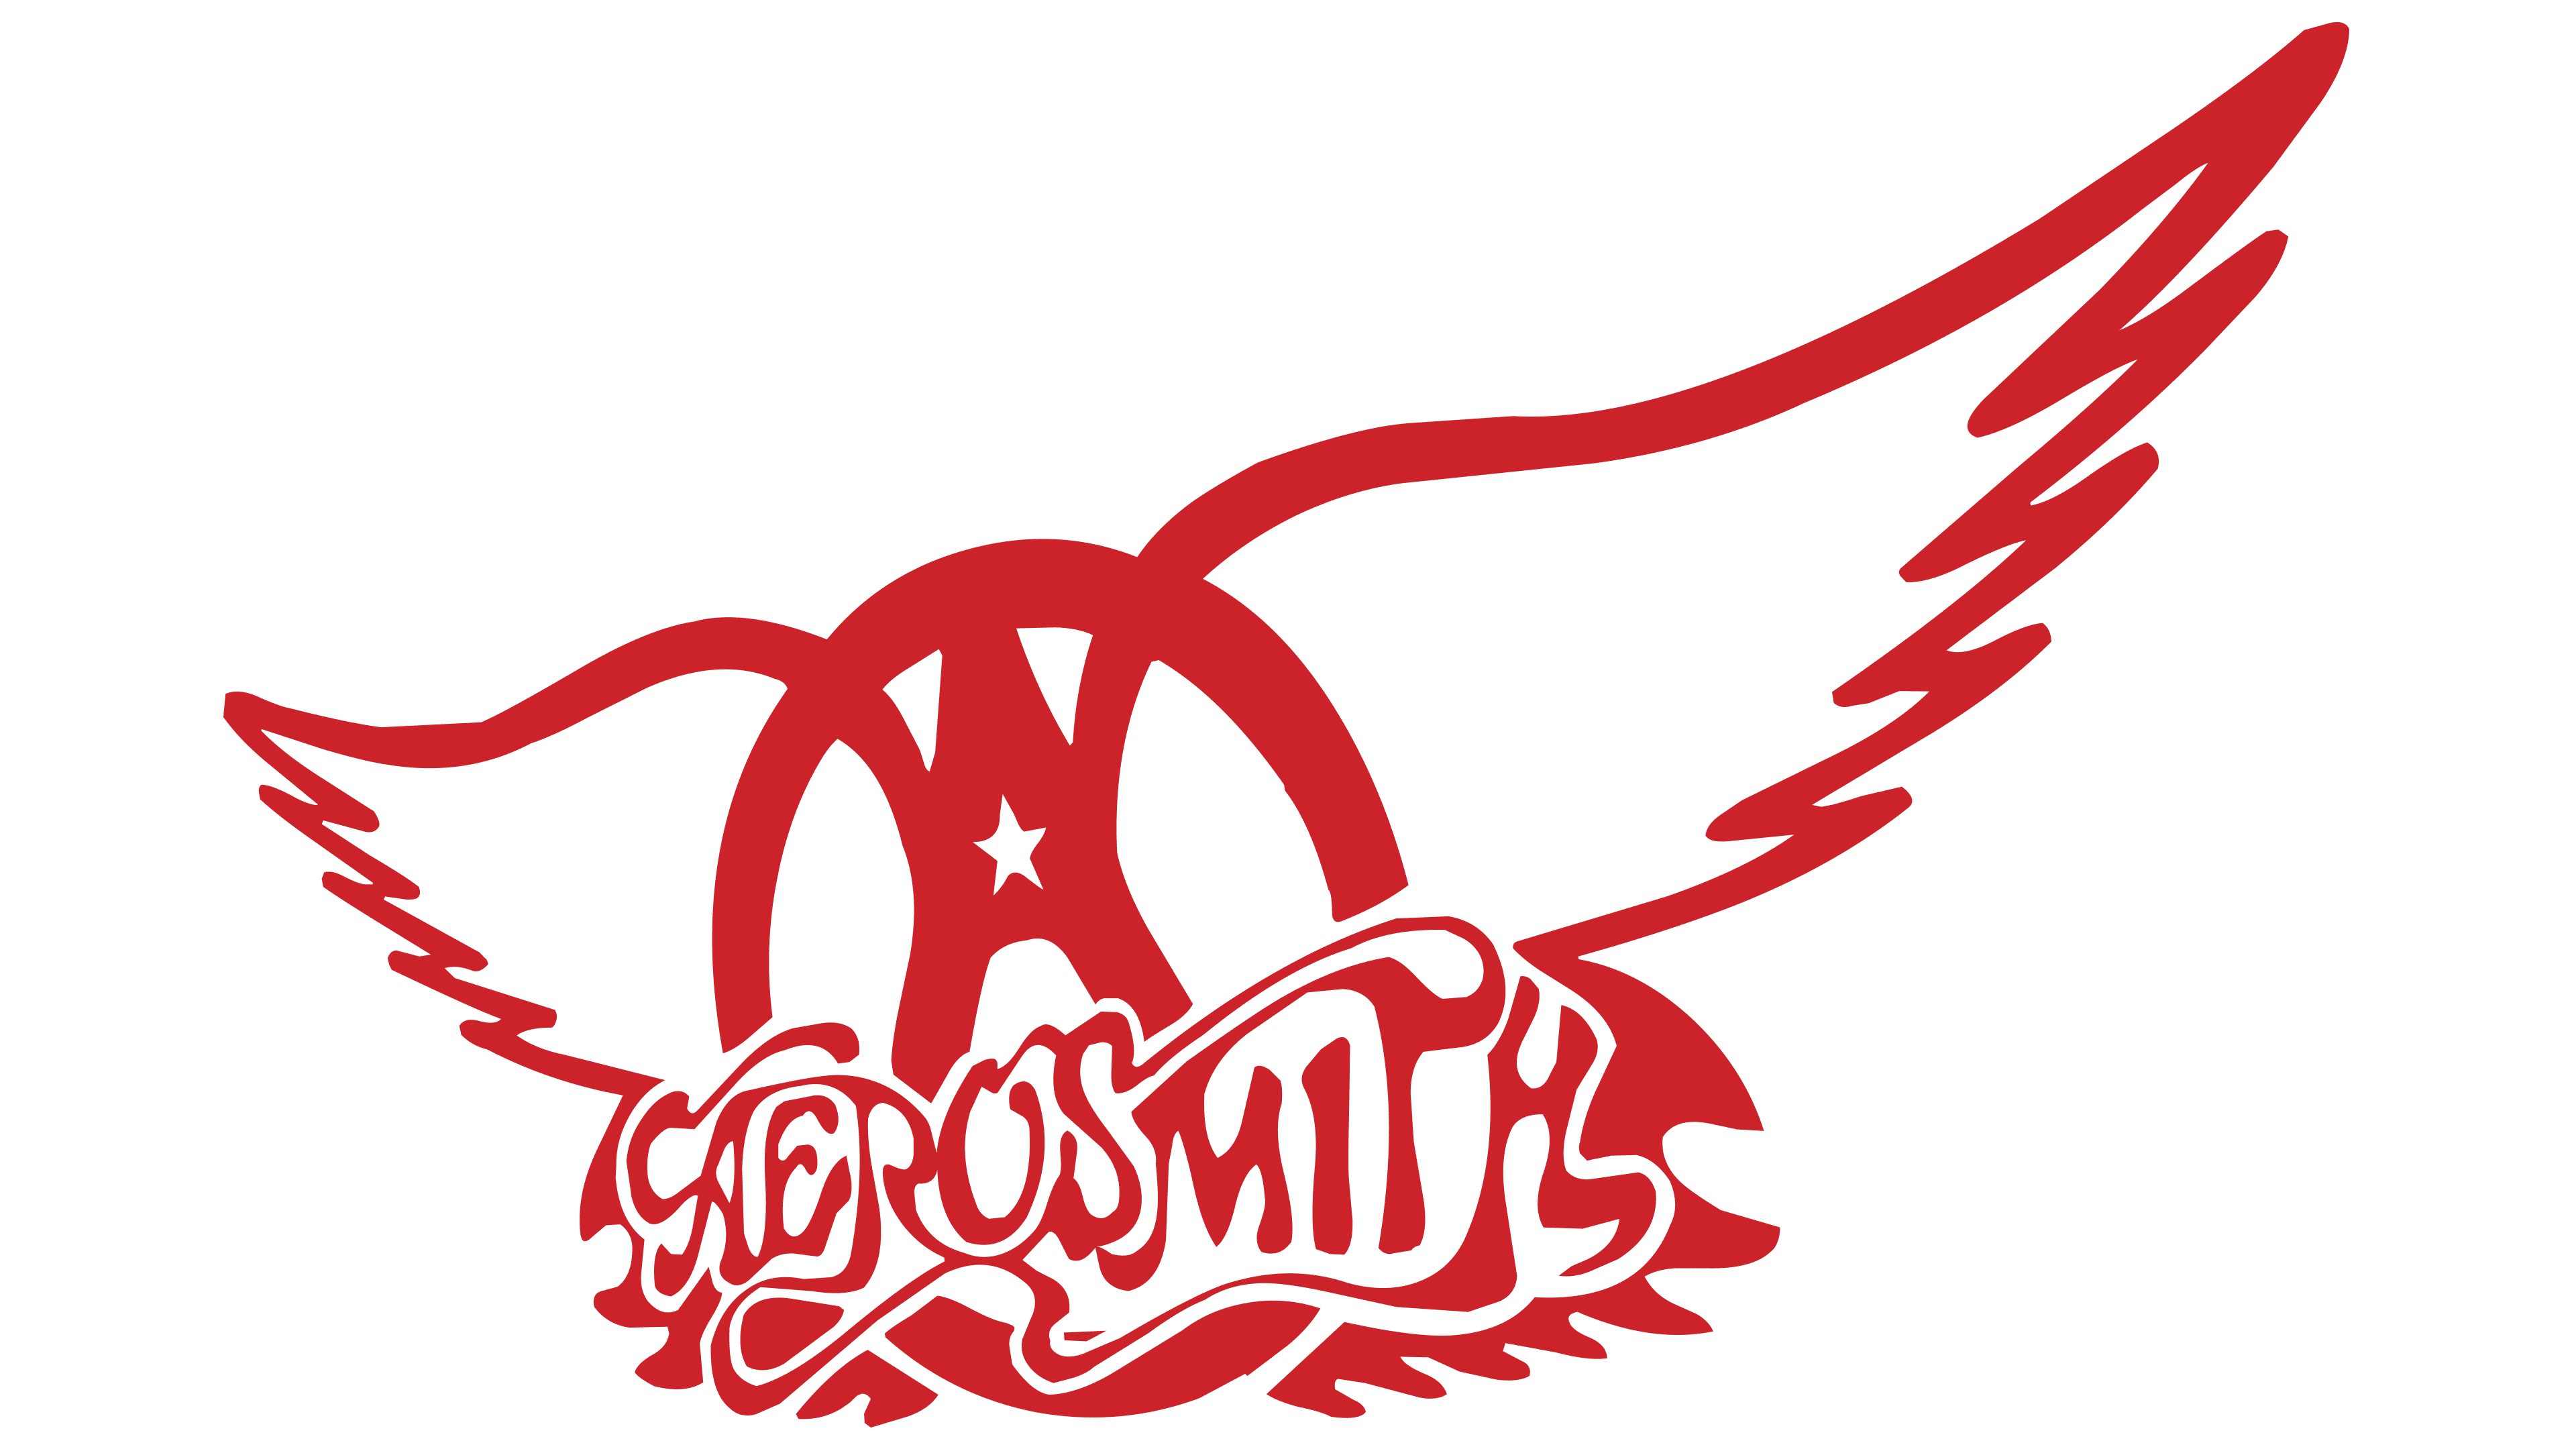 Aerosmith Logo The Most Famous Brands And Company Logos In The World